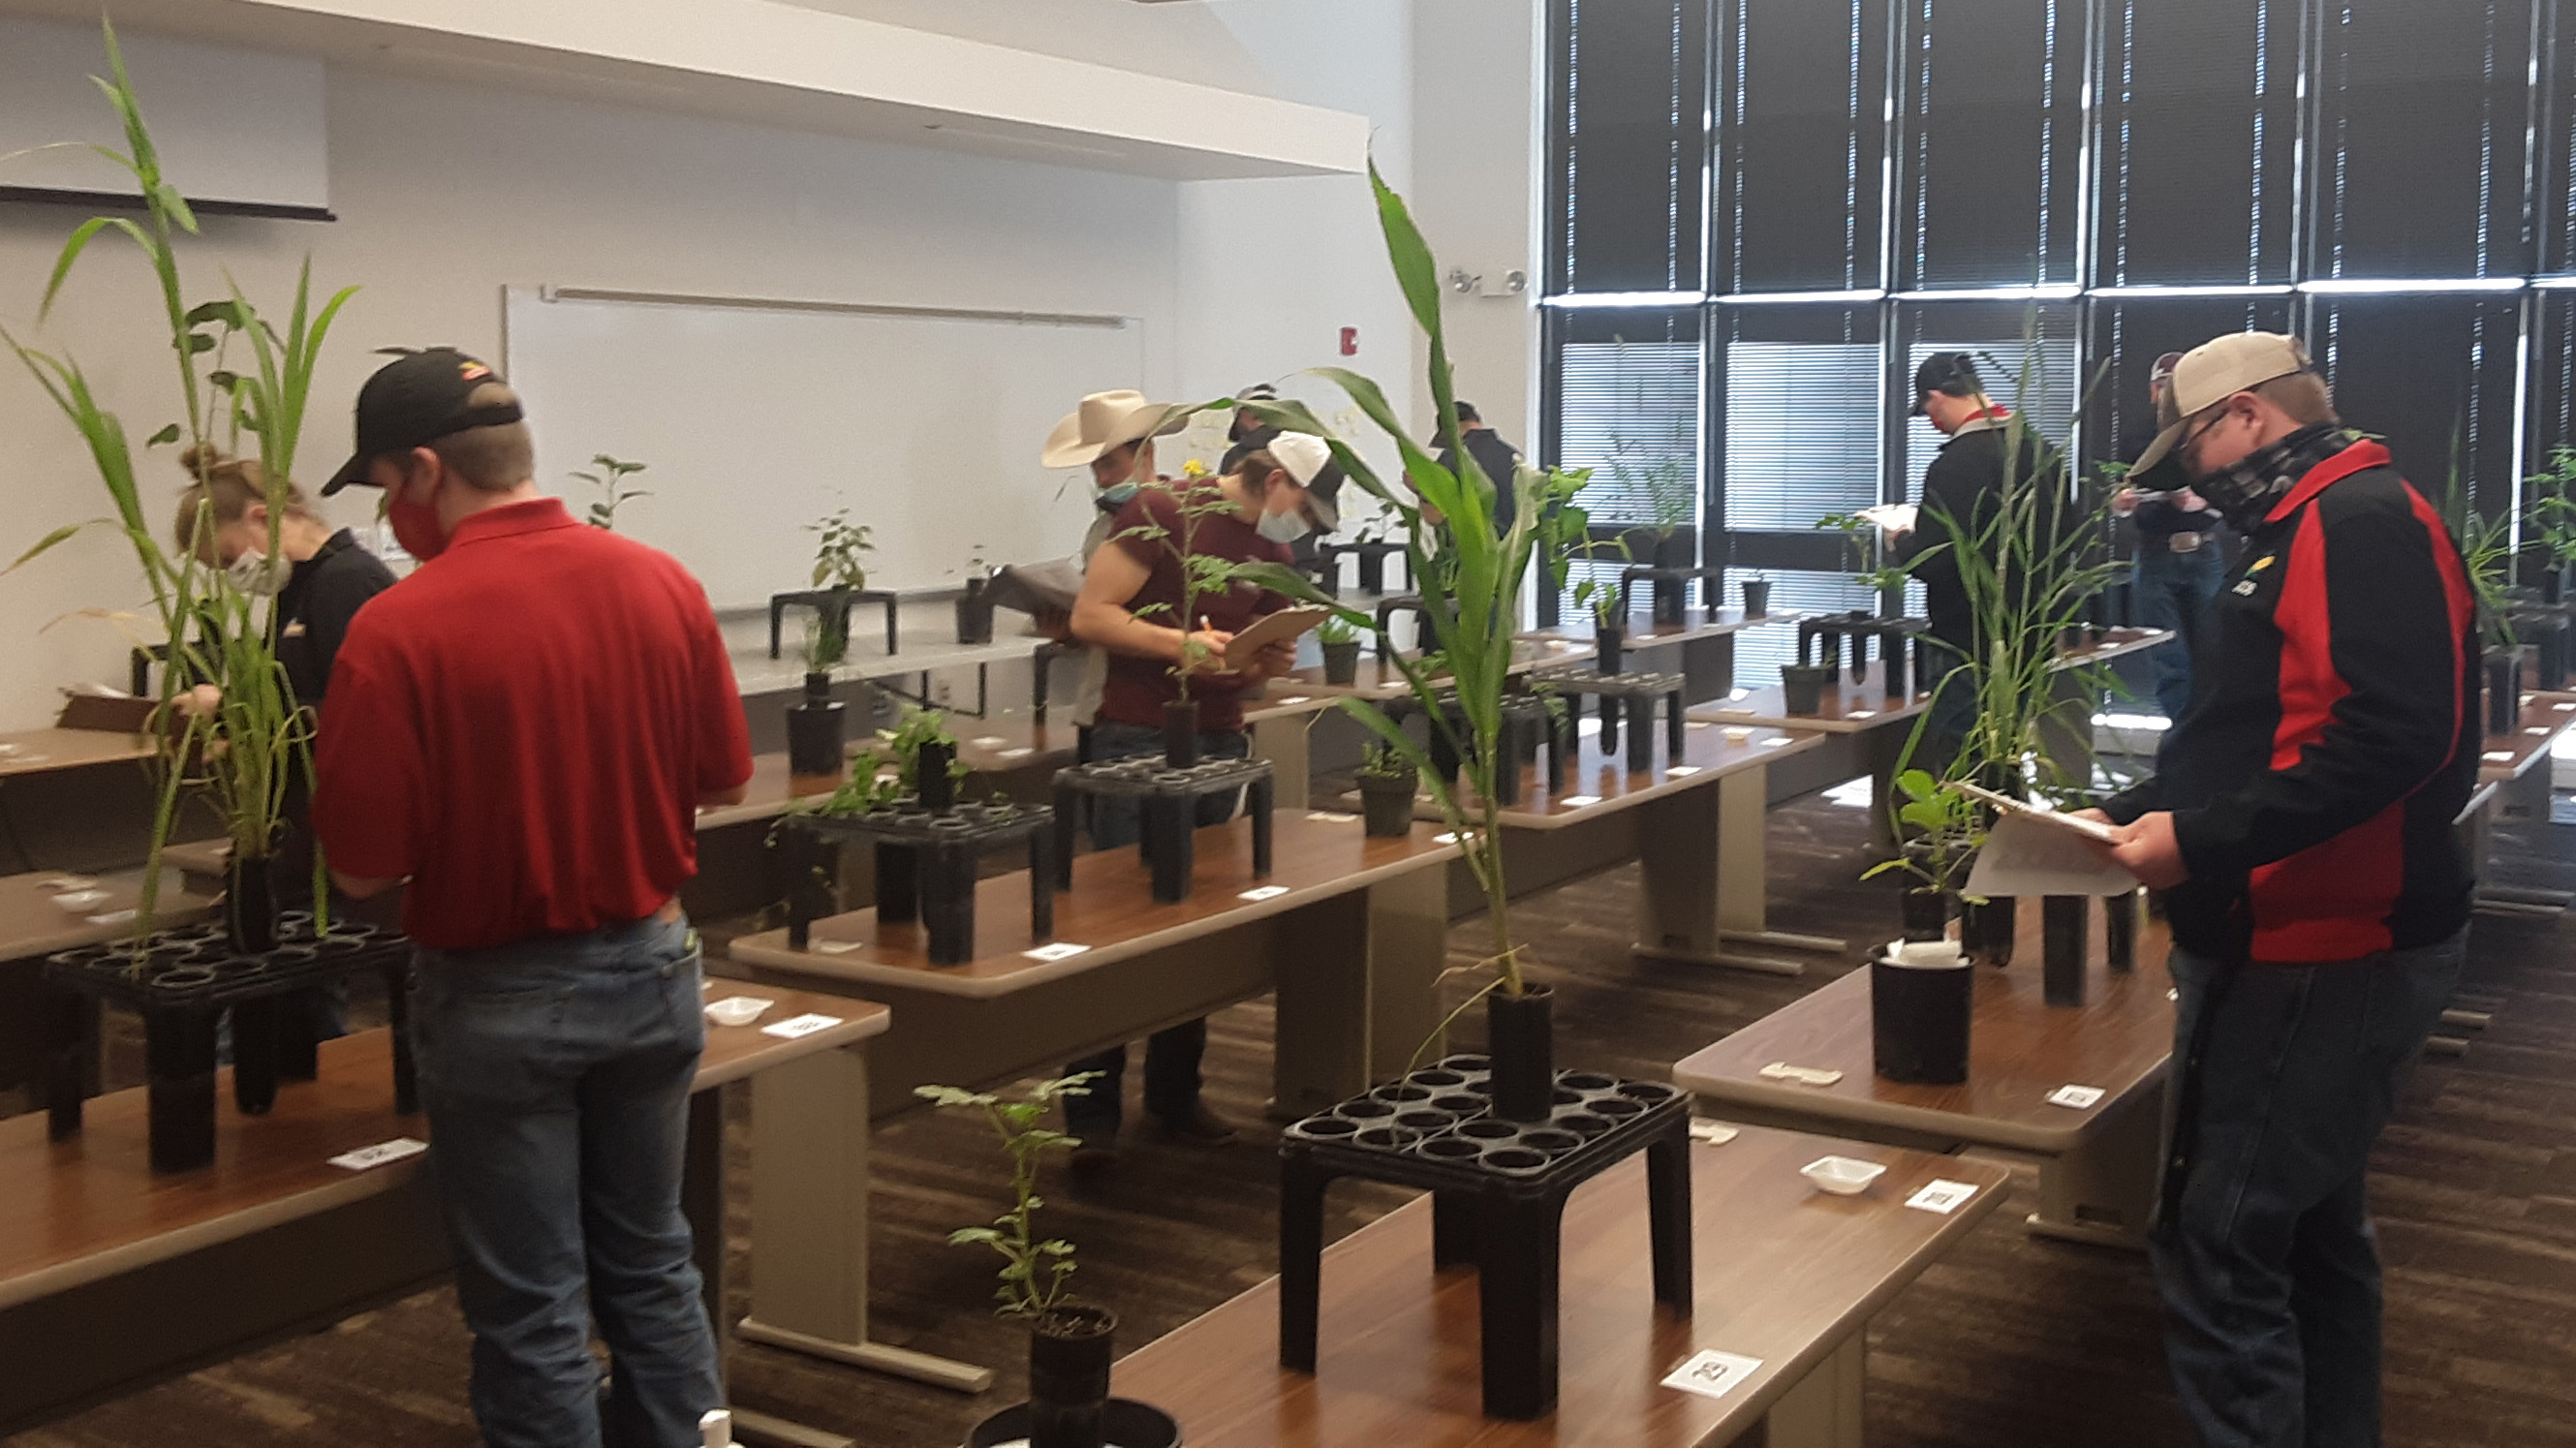 Crops judging students identify plants and agronomic specimens at an NCTA contest in early March. (Ramsdale / NCTA photo)